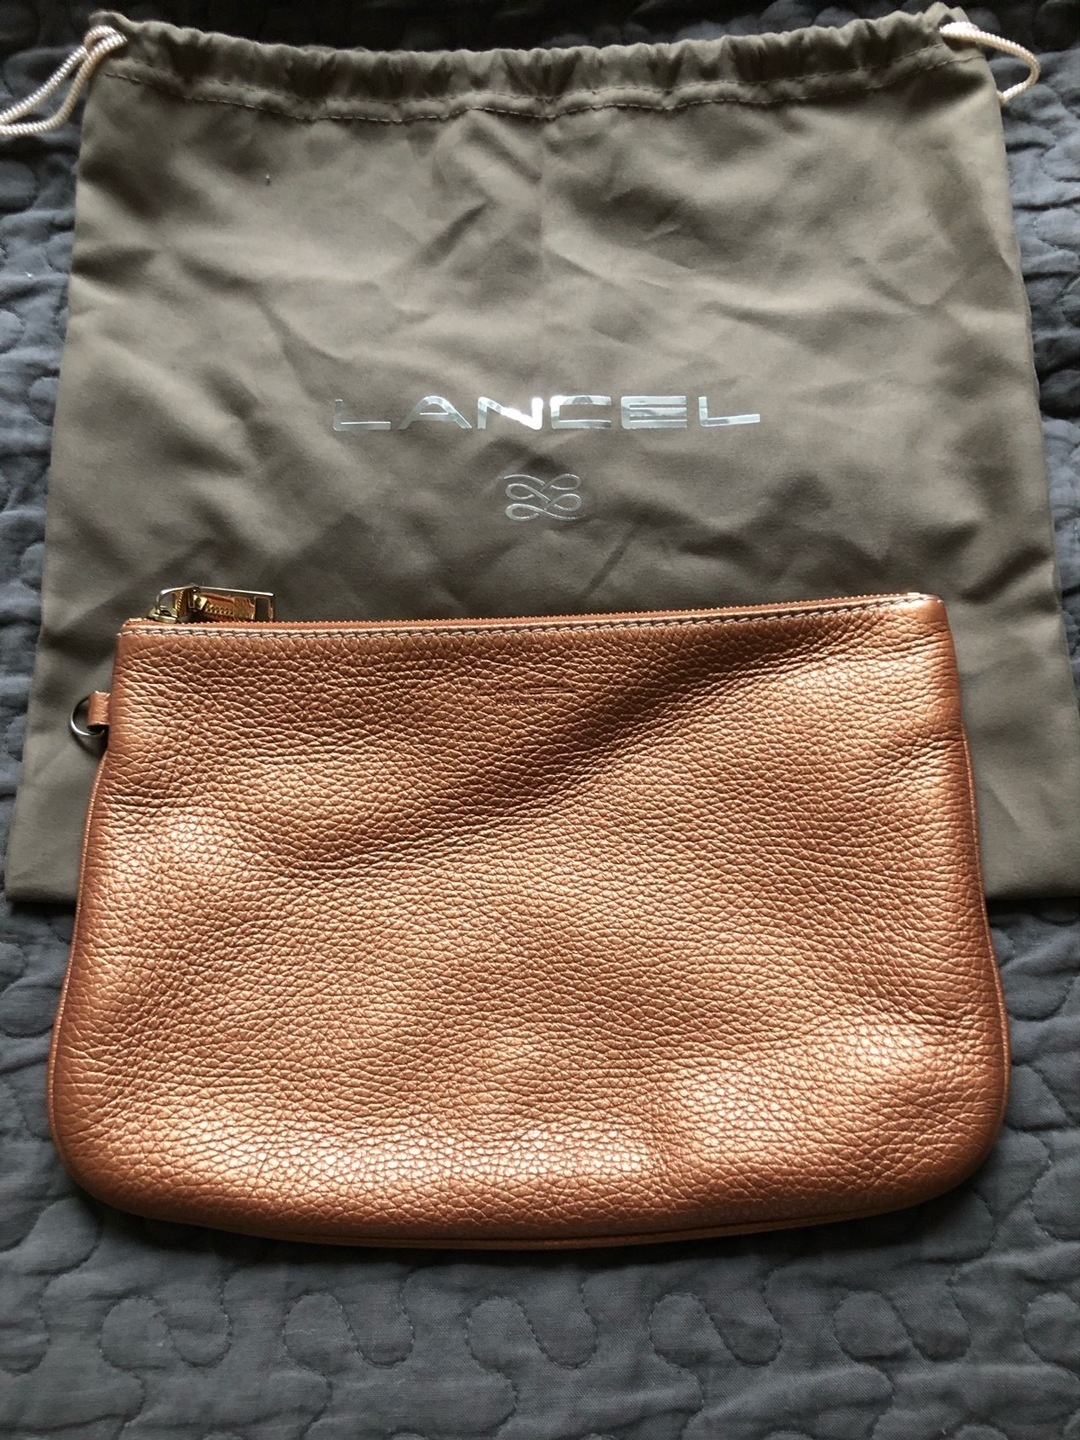 Women's bags & purses - LANCEL photo 1